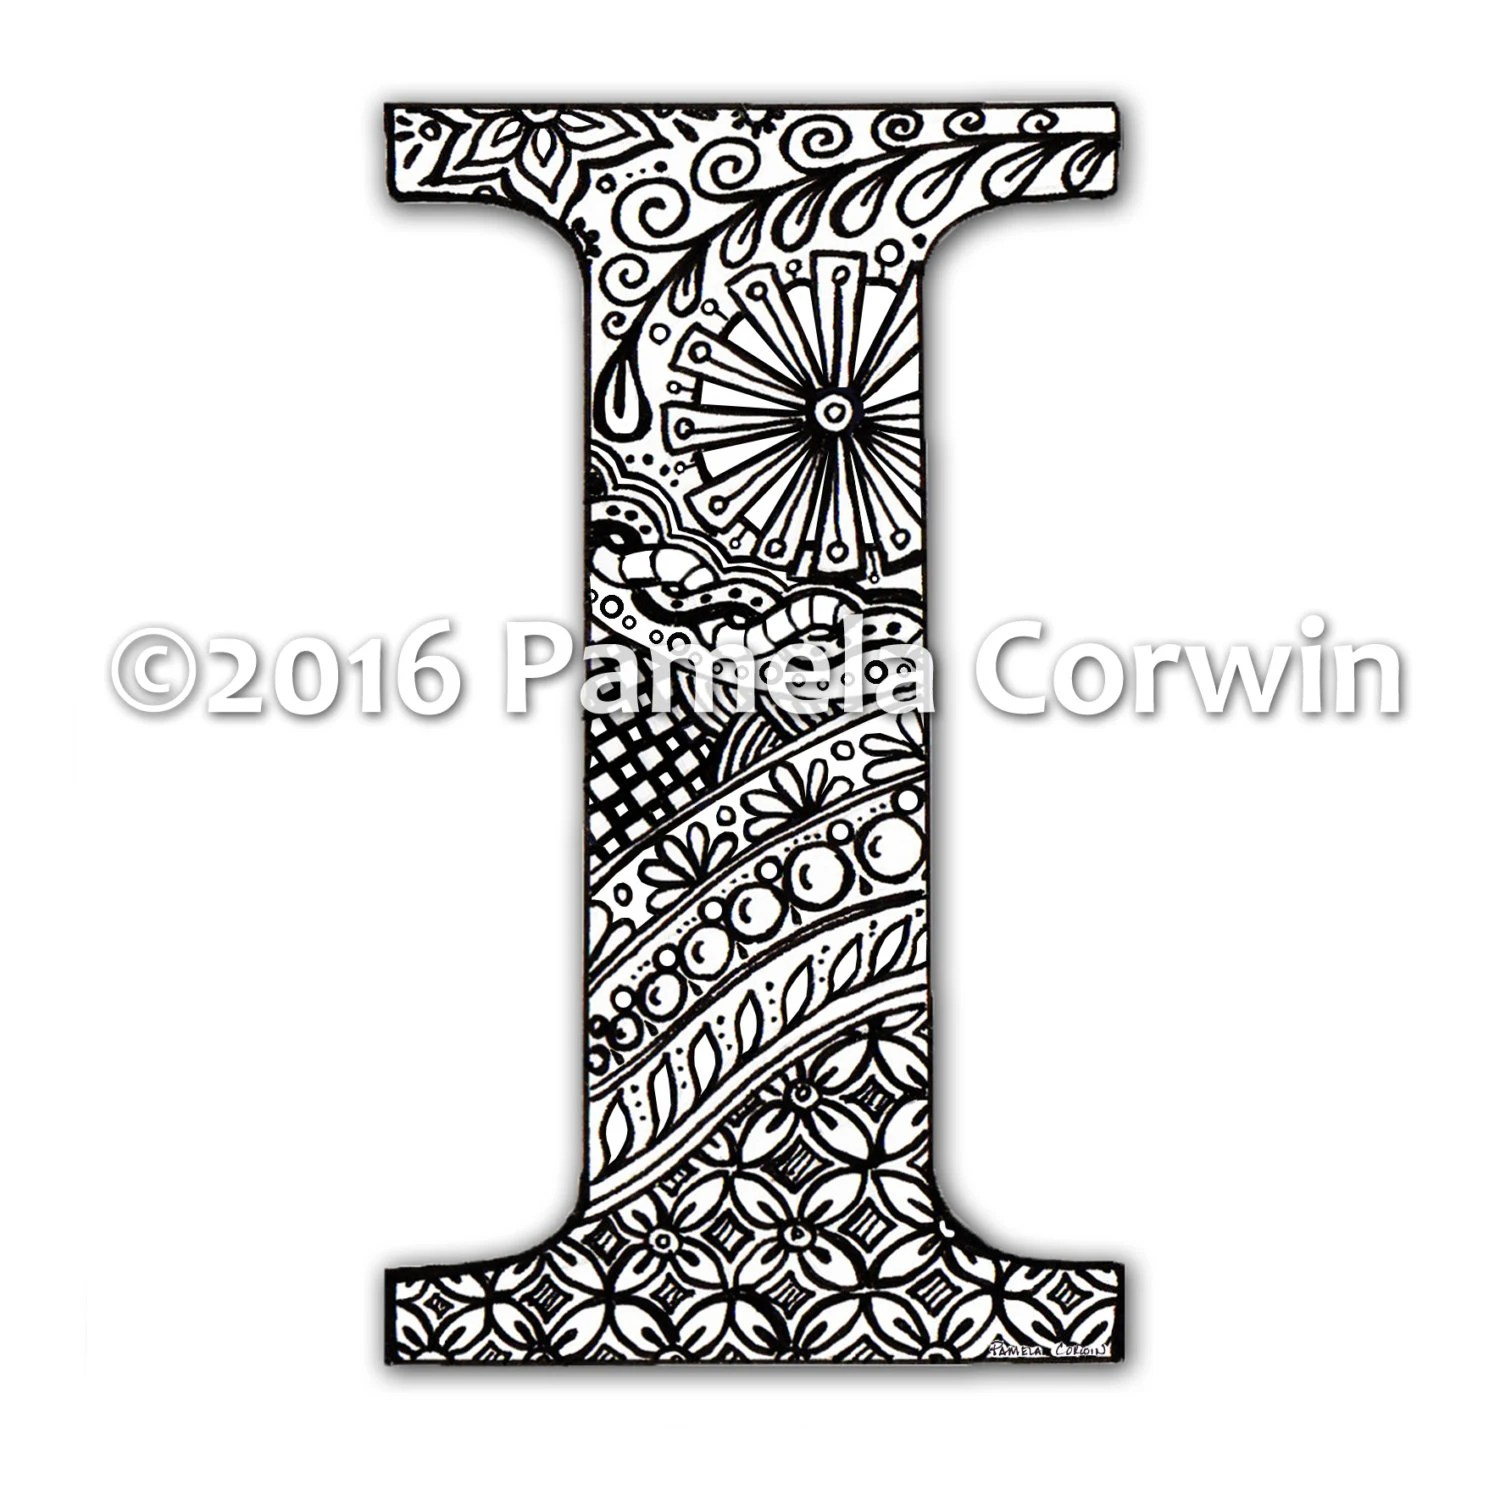 I Monogram Coloring Page from PaperScissorsRock on Etsy Studio